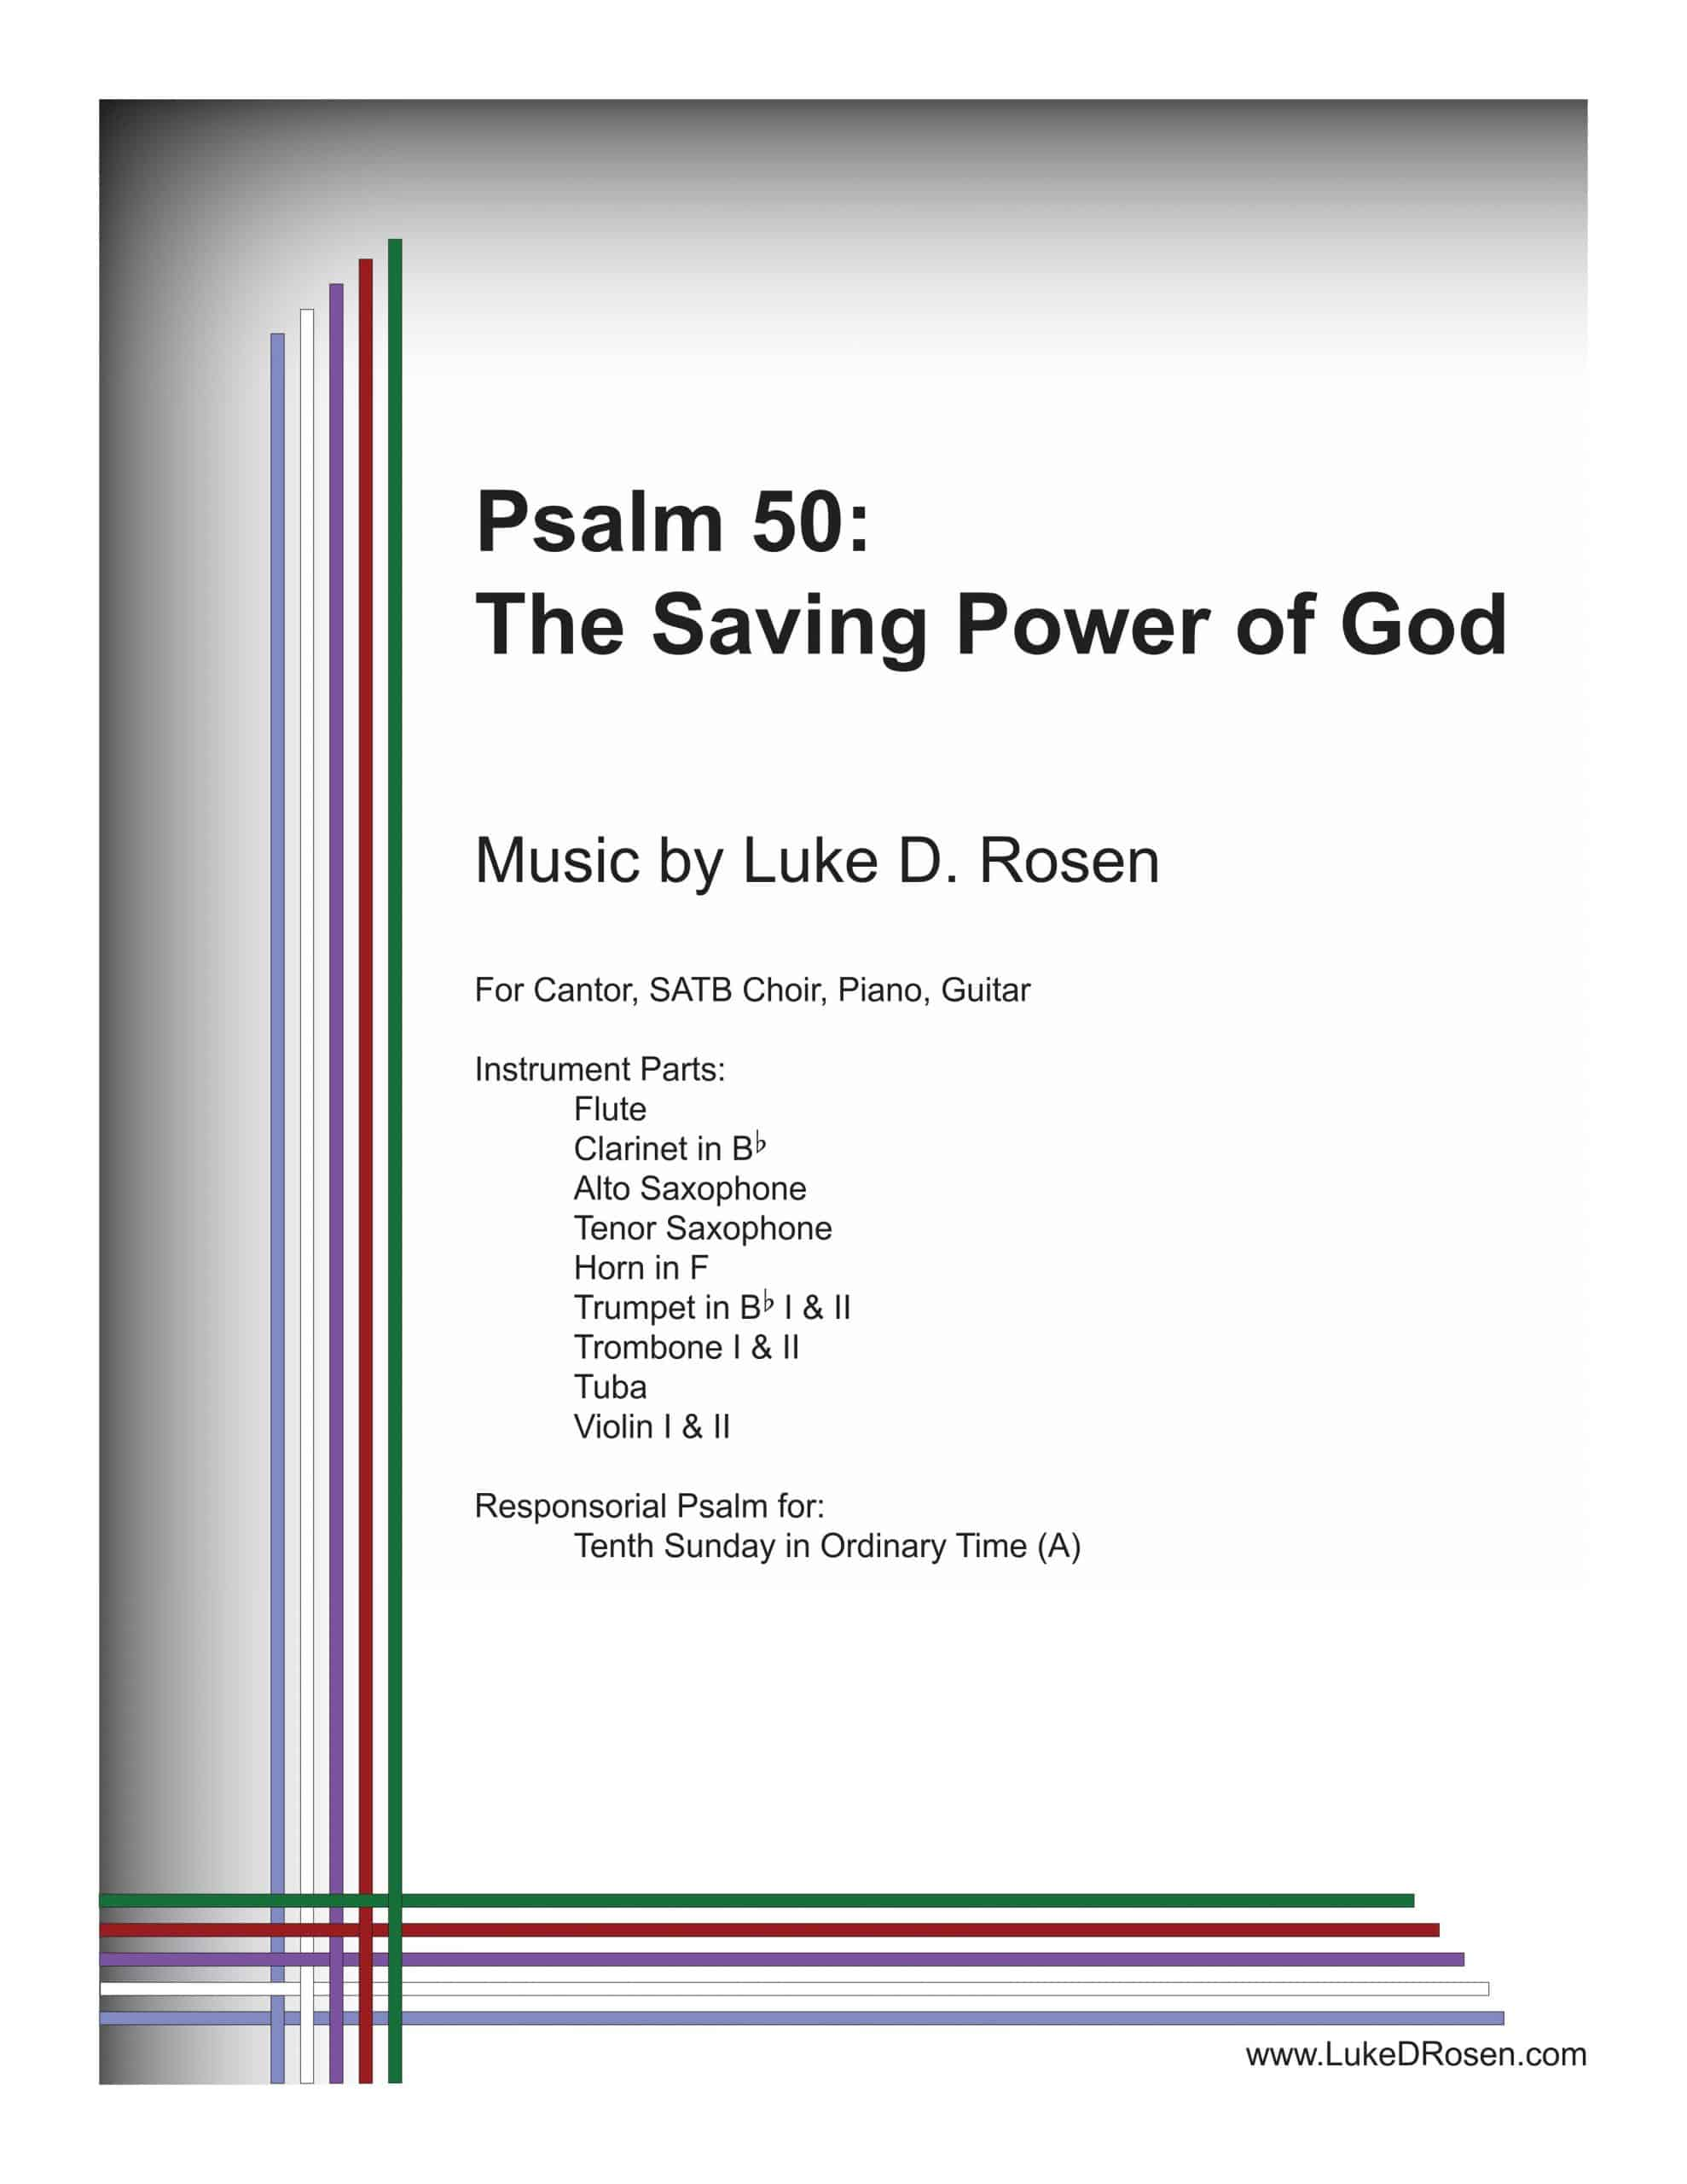 Psalm 50 The Saving Power of God ROSEN Sample Complete PDF scaled